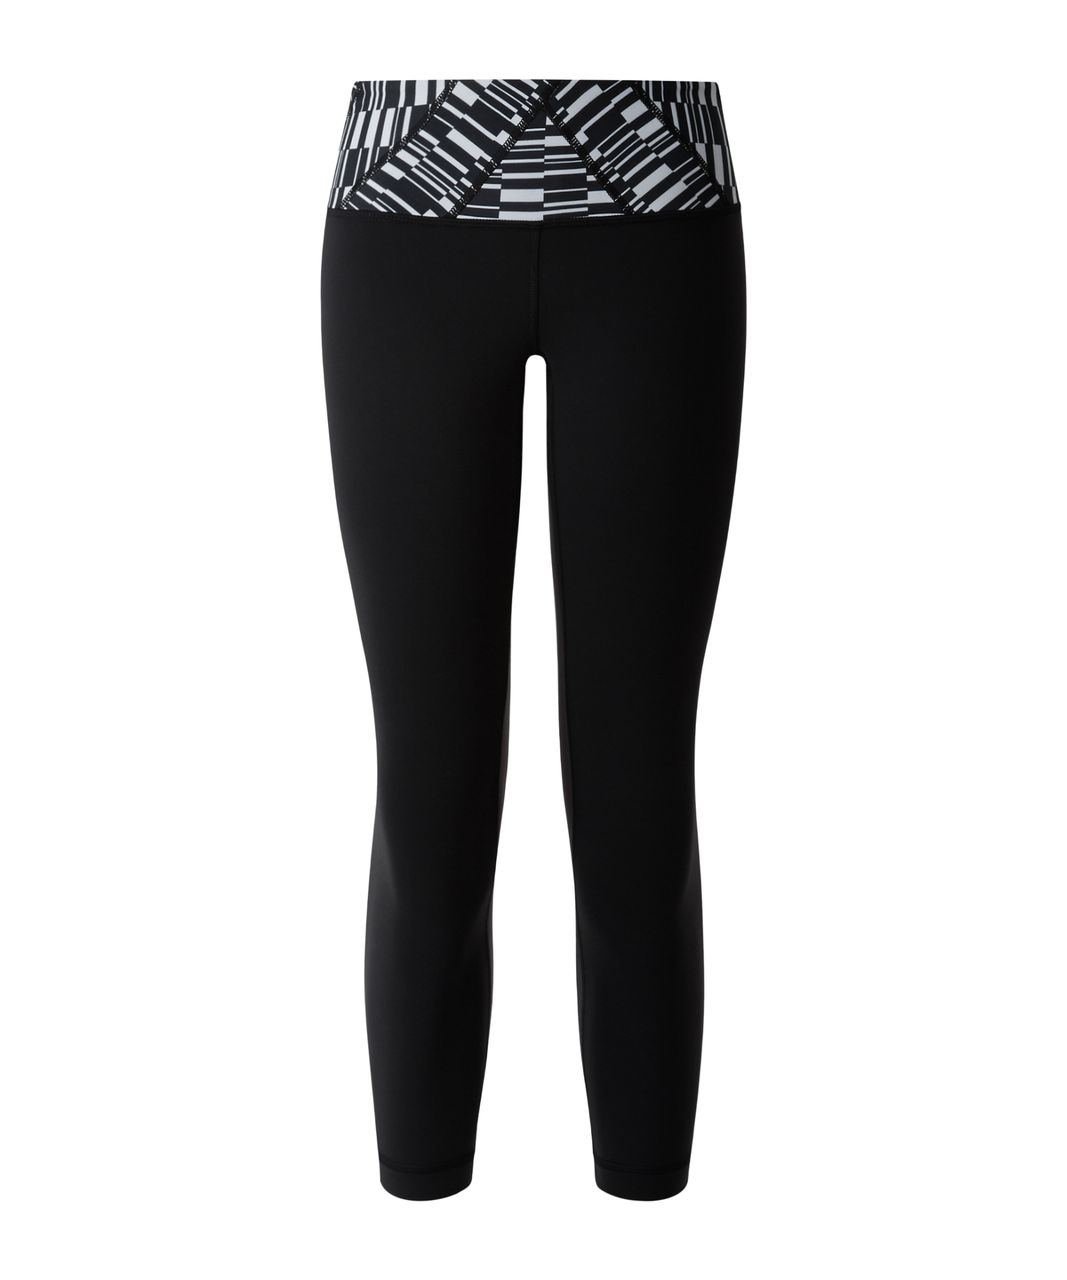 Lululemon Wunder Under Crop III - Black / Ying Yang Stripe White Black